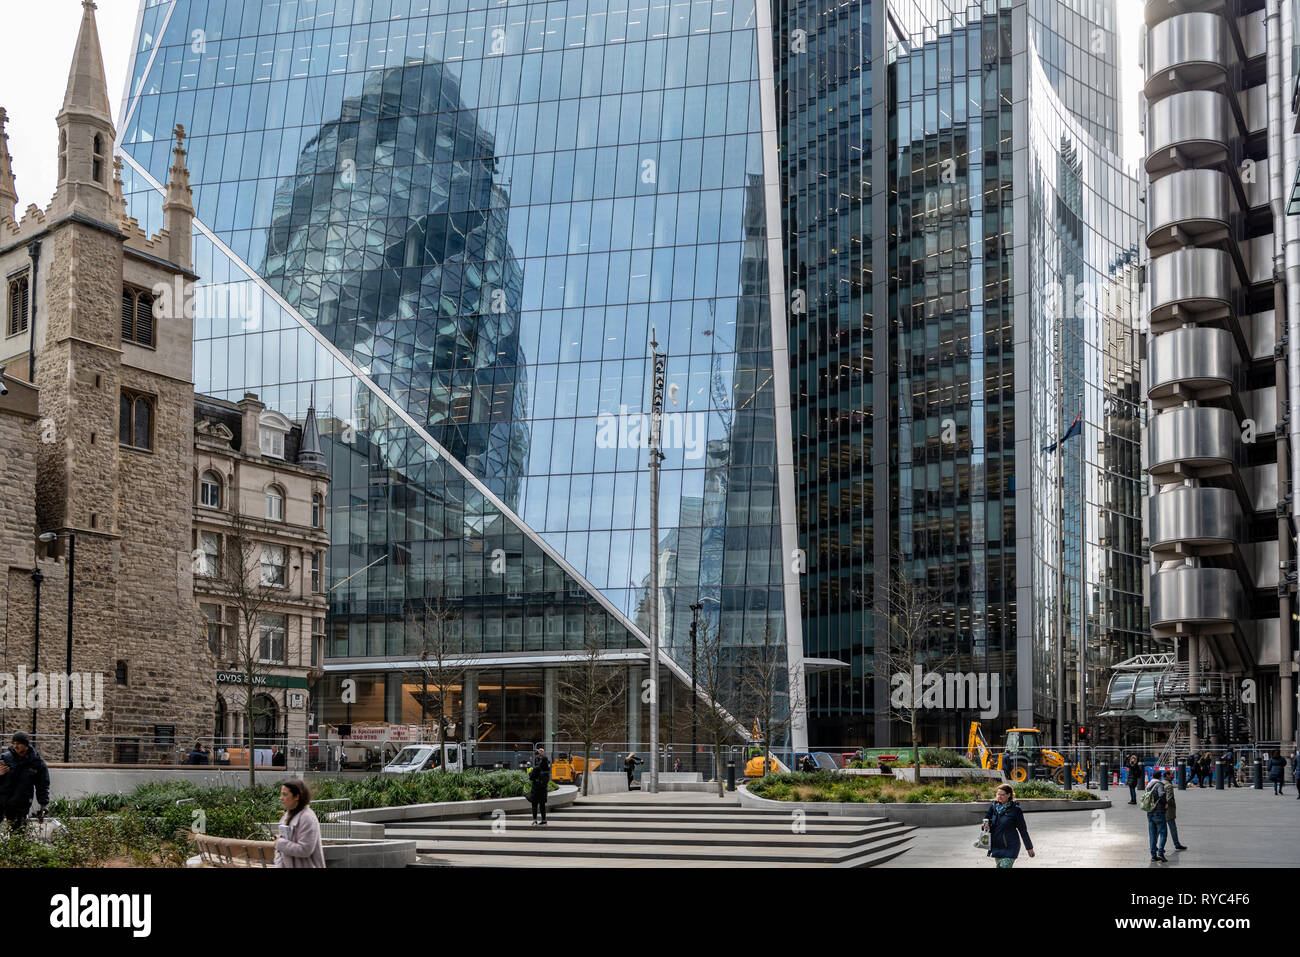 The 'Scalpel', Willis Building and Lloyds Building dominate the south side of Leadenhall St in the City of London - Stock Image